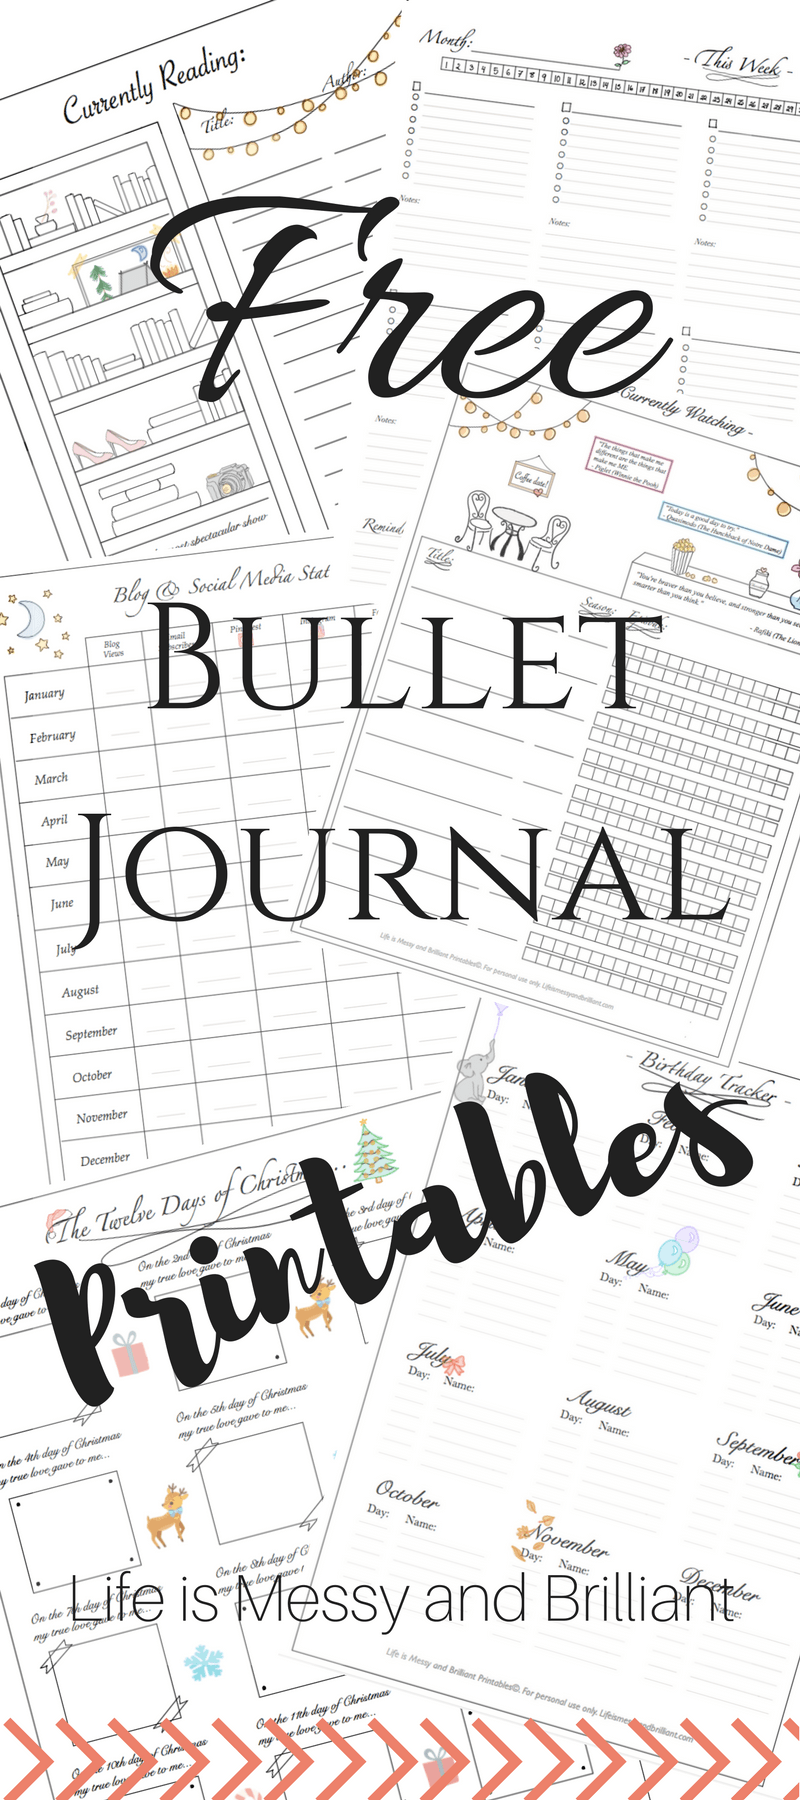 This is an image of Satisfactory Printable Bullet Journal Pages